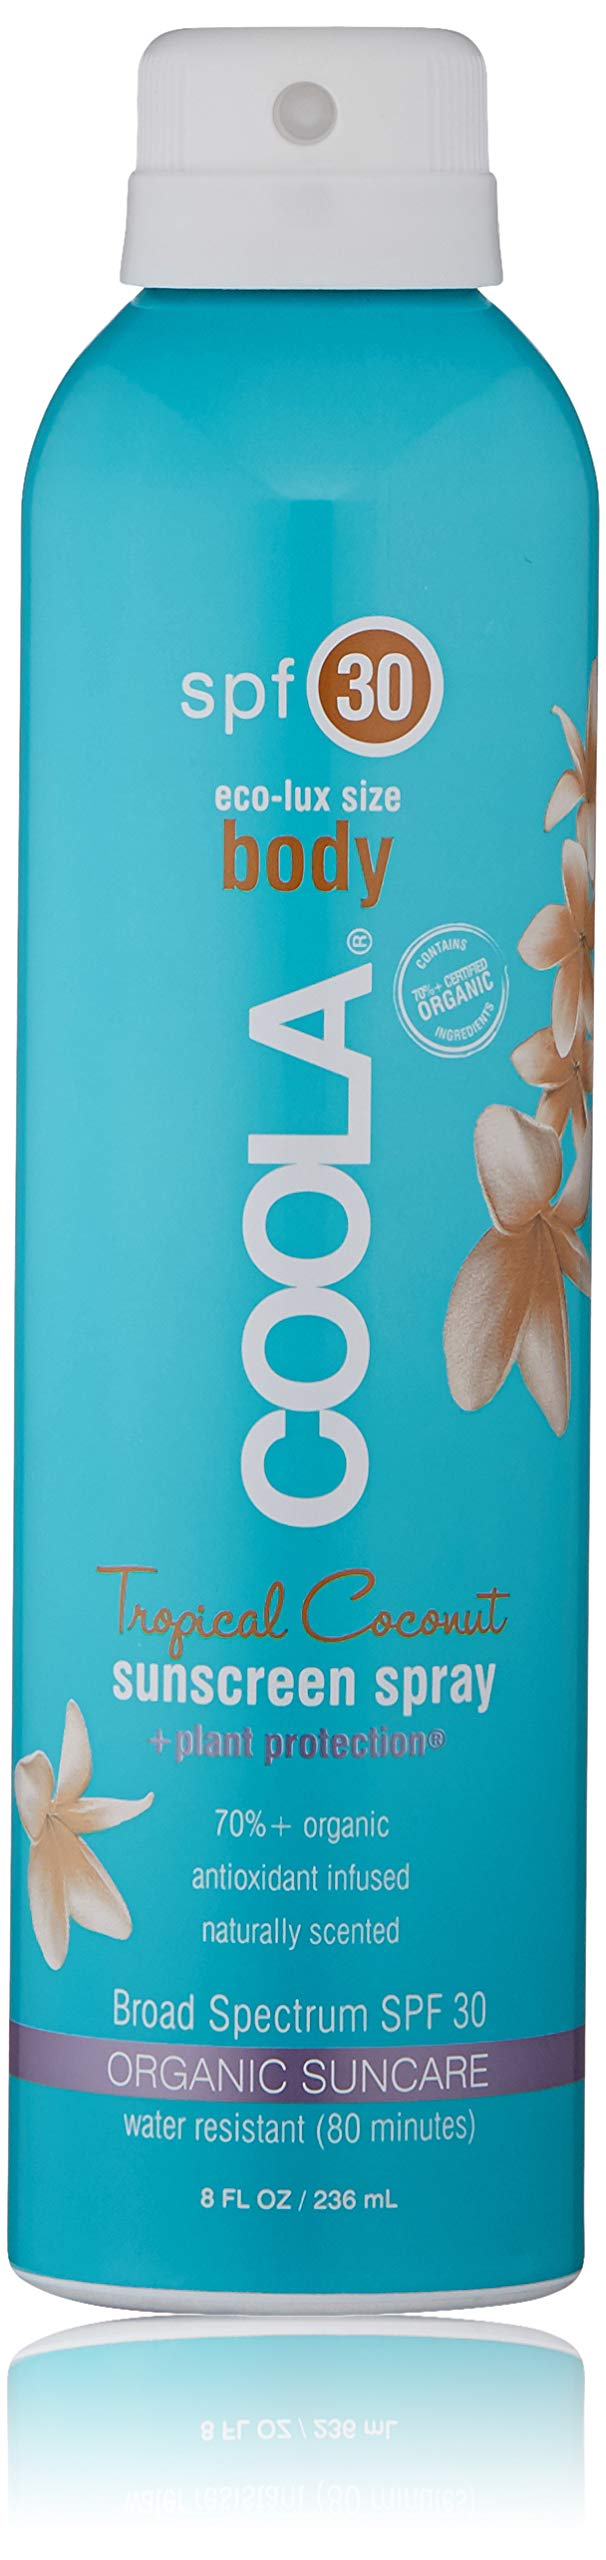 COOLA Organic Sunscreen Body Spray | SPF 30 | Certified Organic Ingredients | Farm to Face | Ultra Sheer | Eco-Lux Size | Continuous Spray | Water Resistant | Tropical Coconut